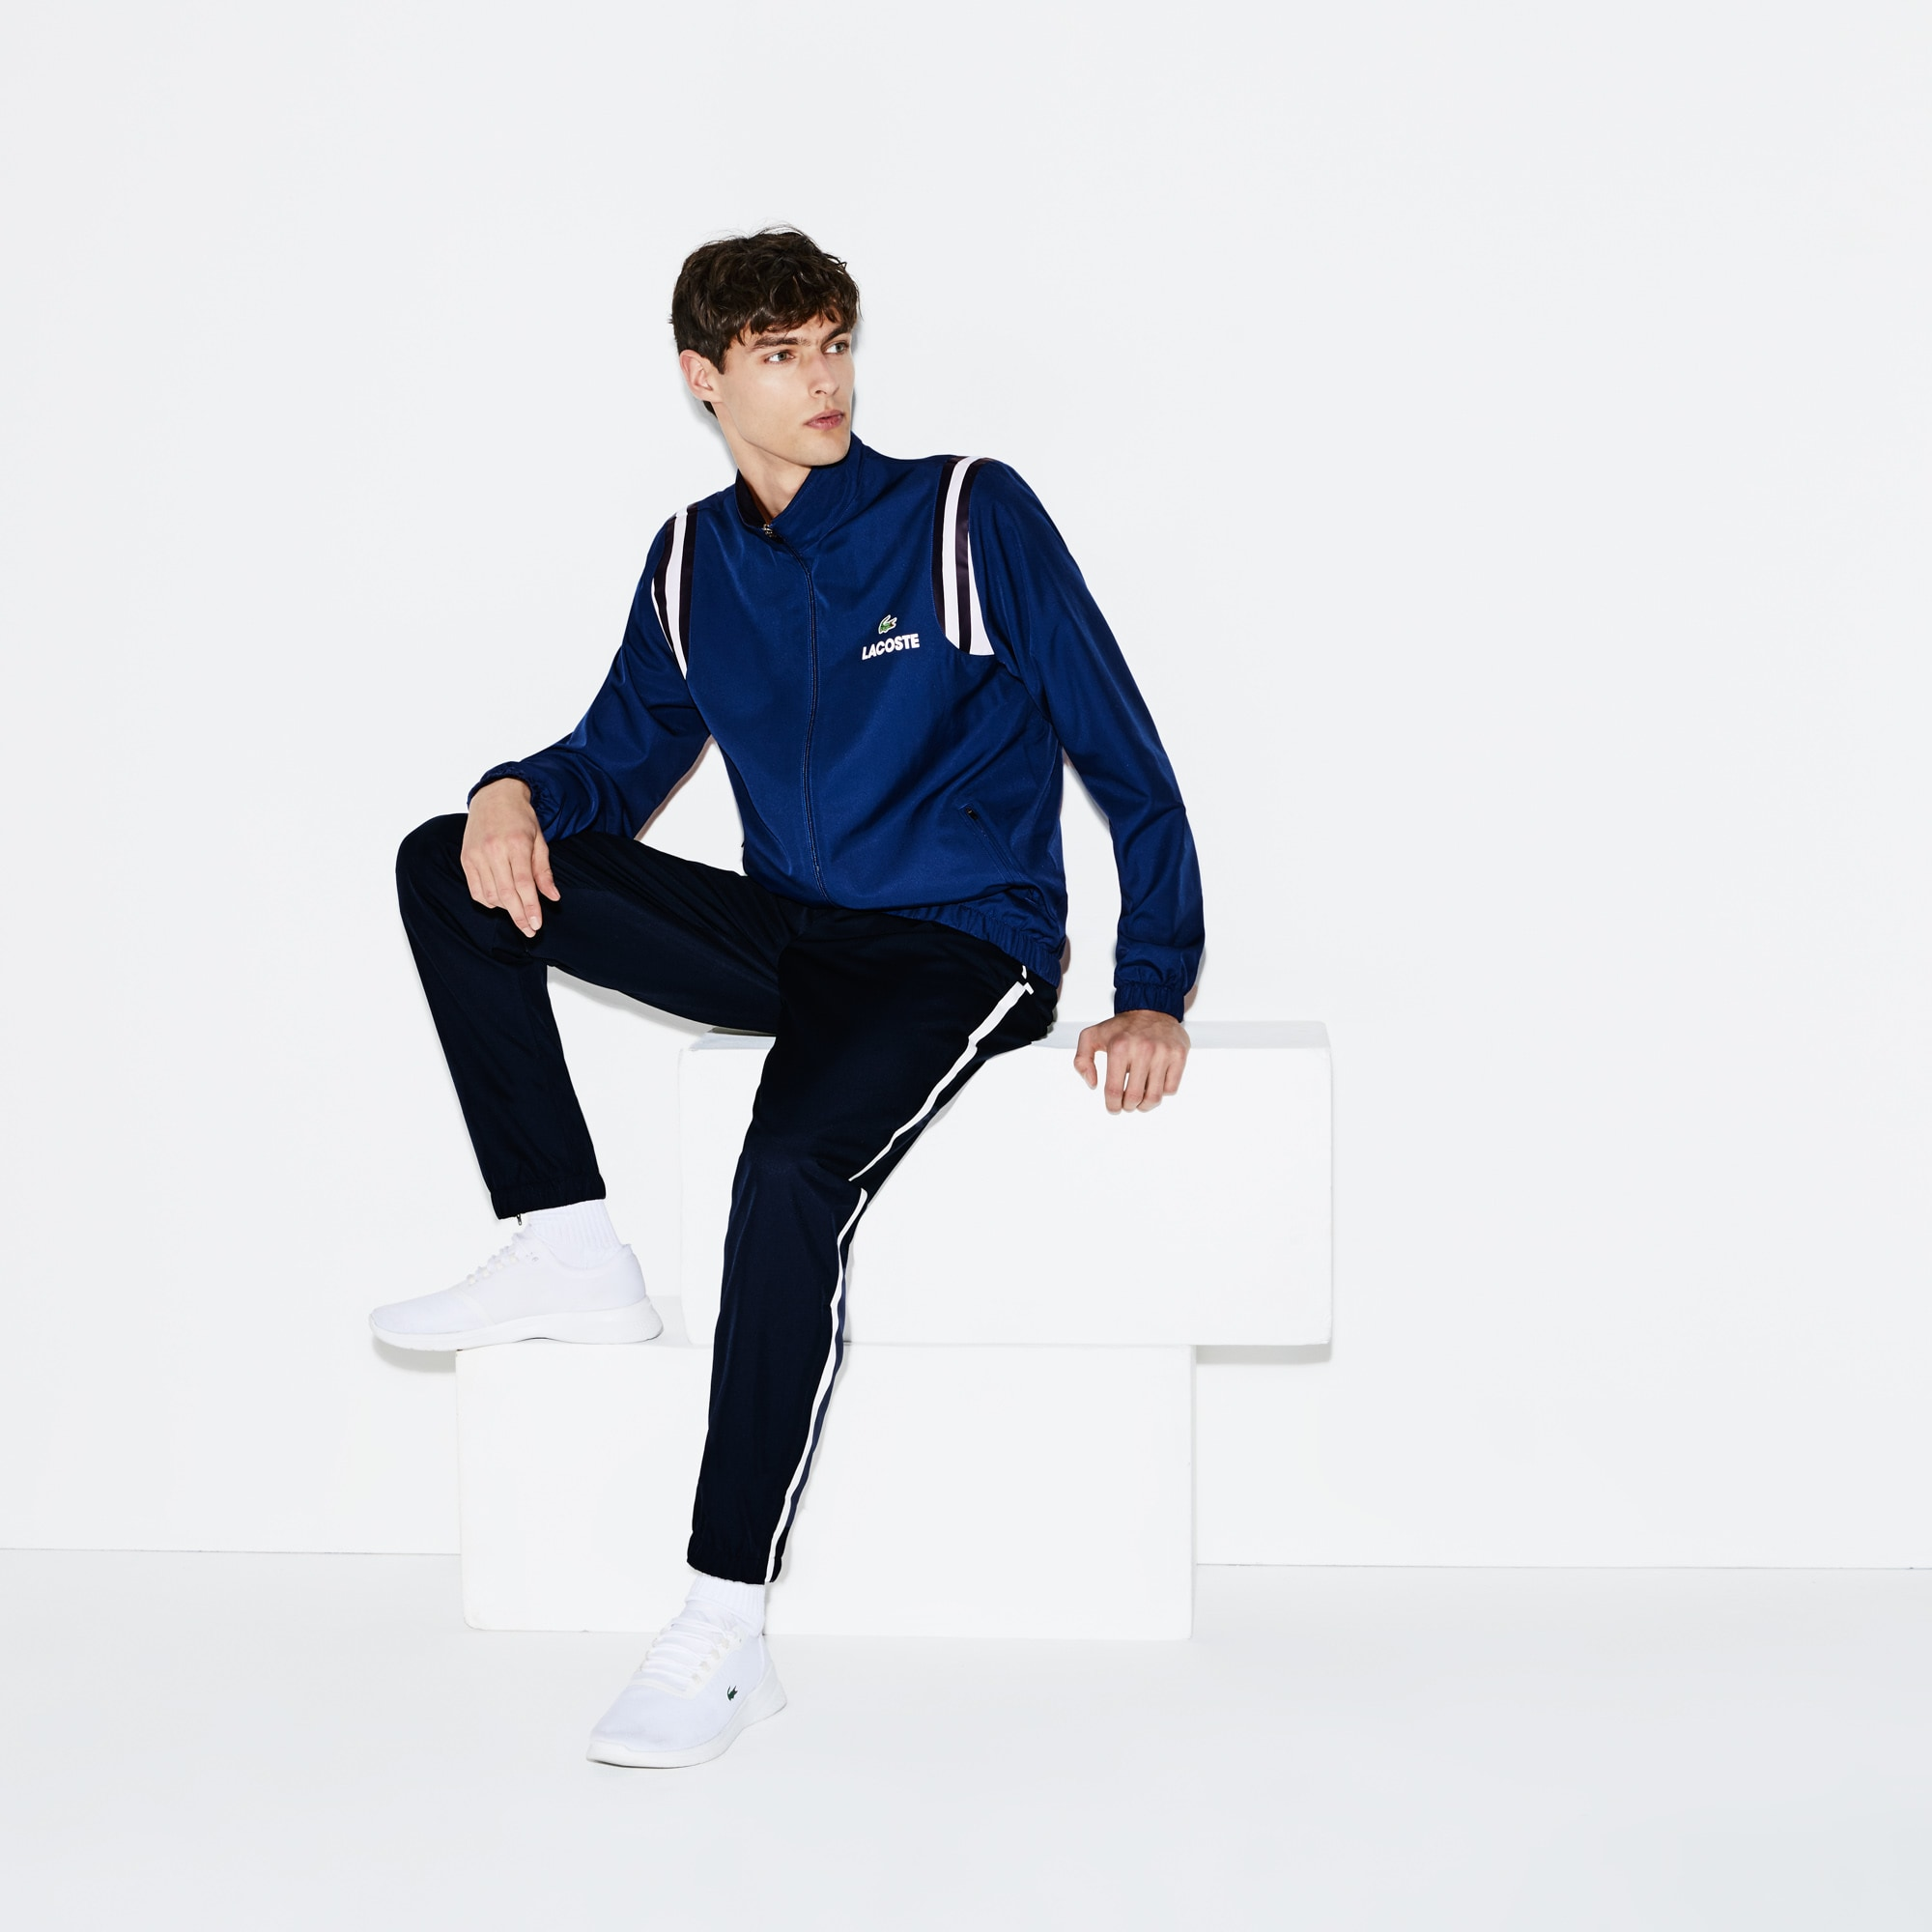 Men's SPORT Technical Stretch Jersey Trackpants - Novak Djokovic Supporter Collection